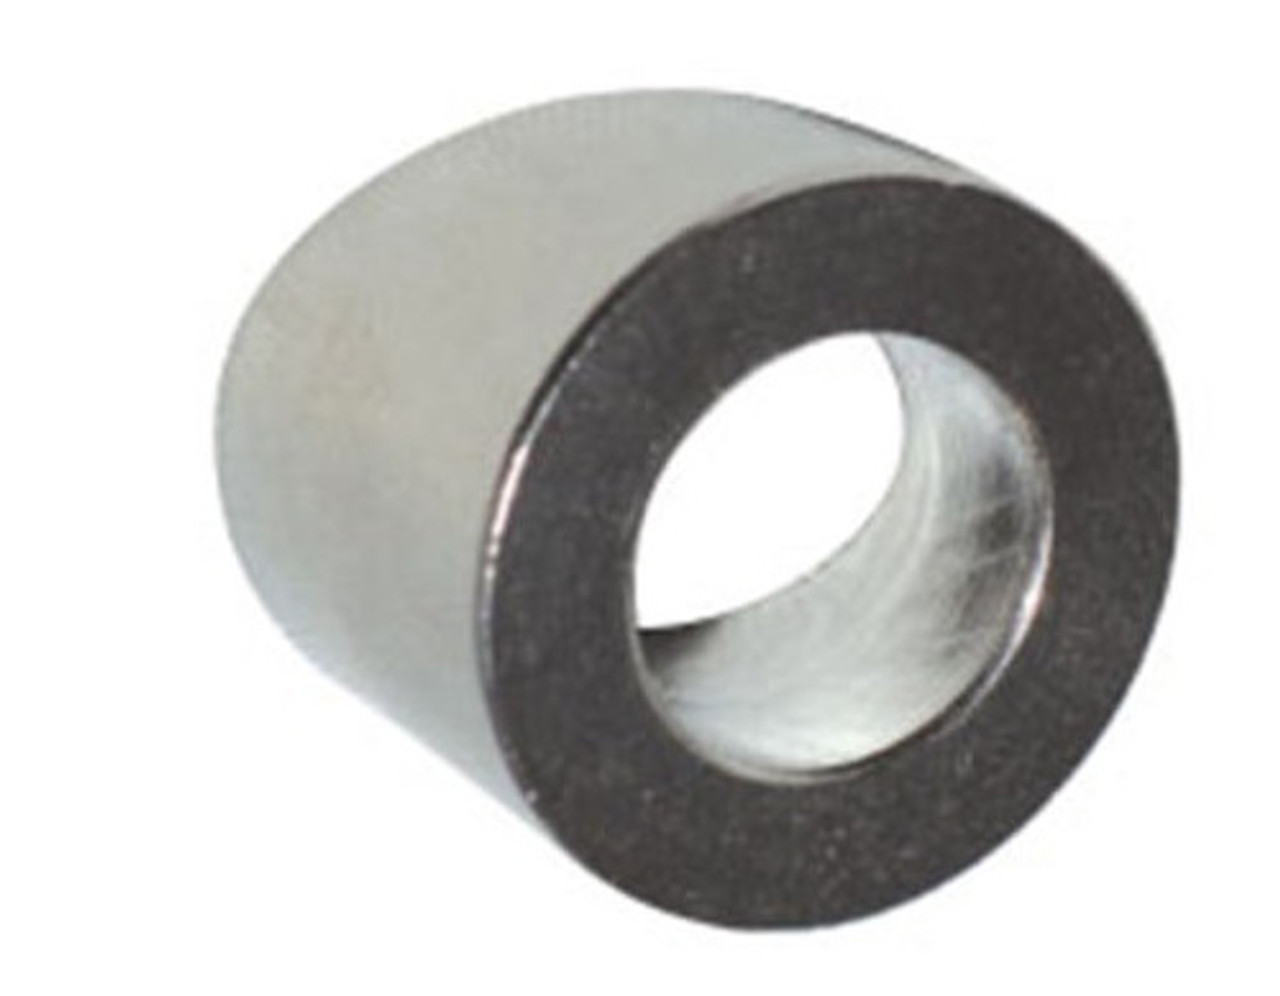 "T316 Stainless Steel Angled Washer 30 degrees, 3/8"" Bore - for 3/16"" Invisible Fitting"